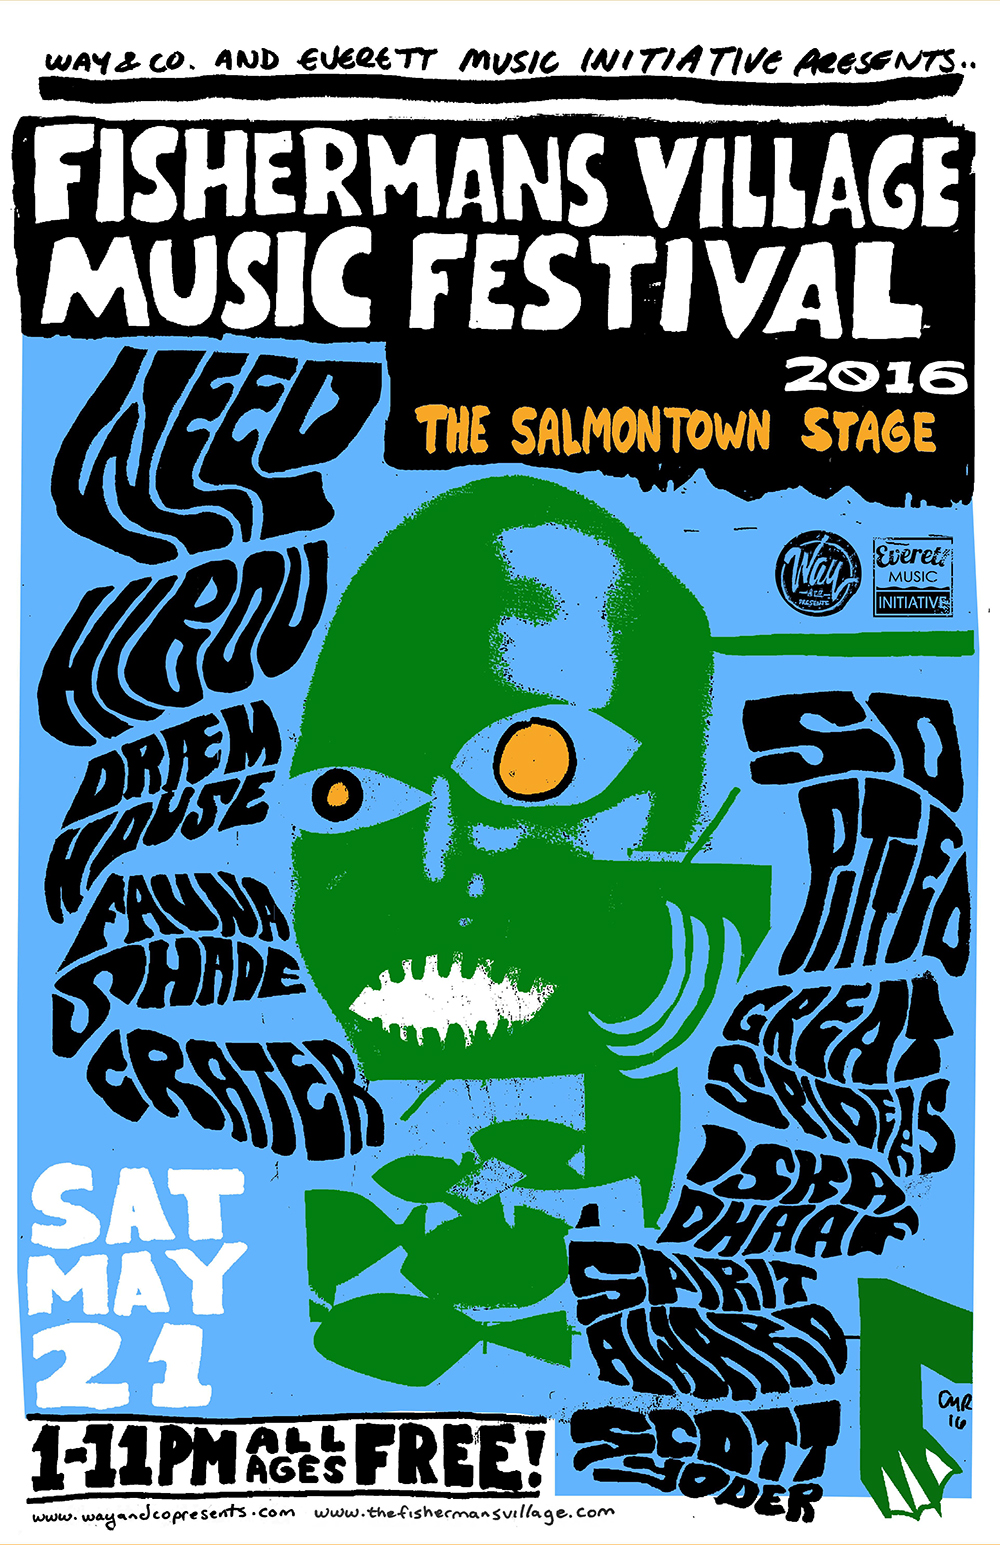 FVMF16 Salmon Town Stage Poster UPDATED with HIBOU 5.12.16 WEBBBBB.jpg